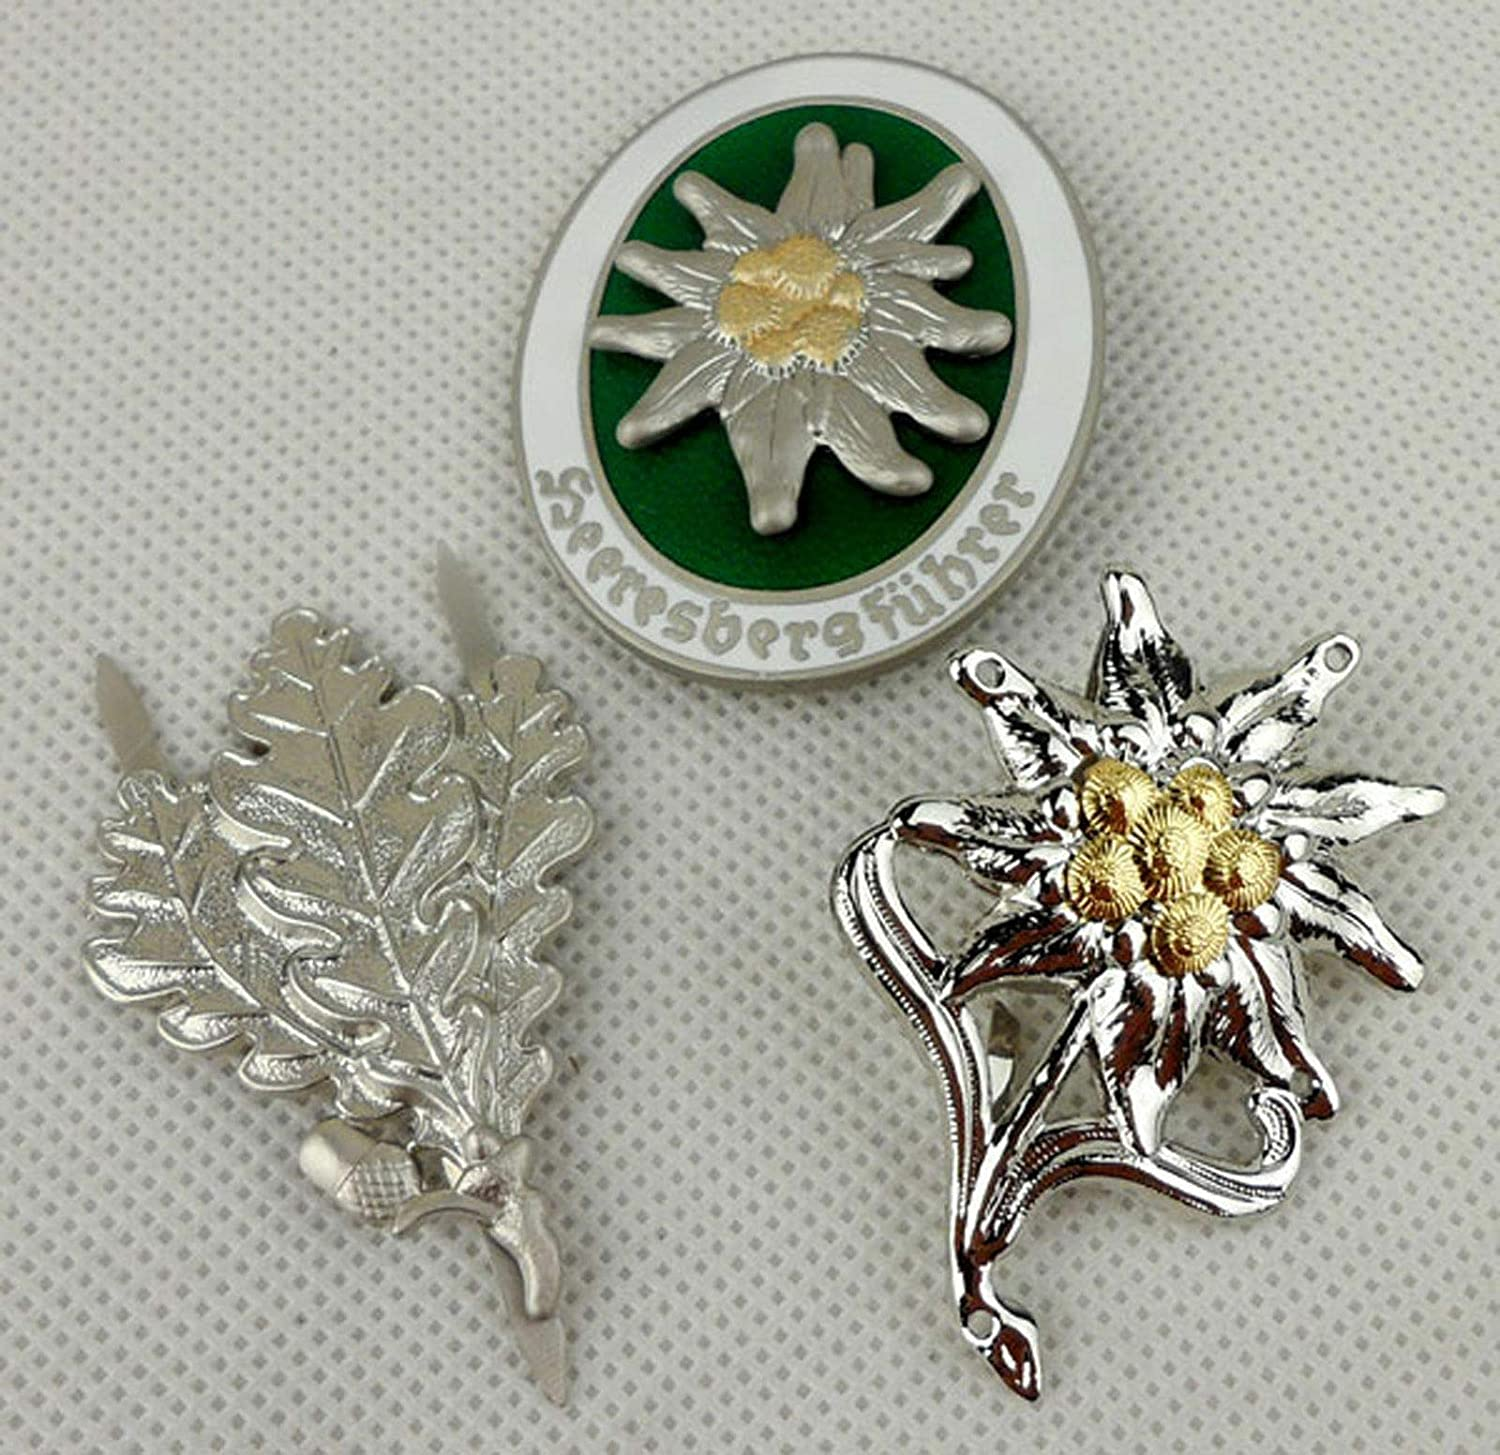 Max 74% OFF Full Set WWII German Sale Army Mountain Edelweiss Insi Badge Division